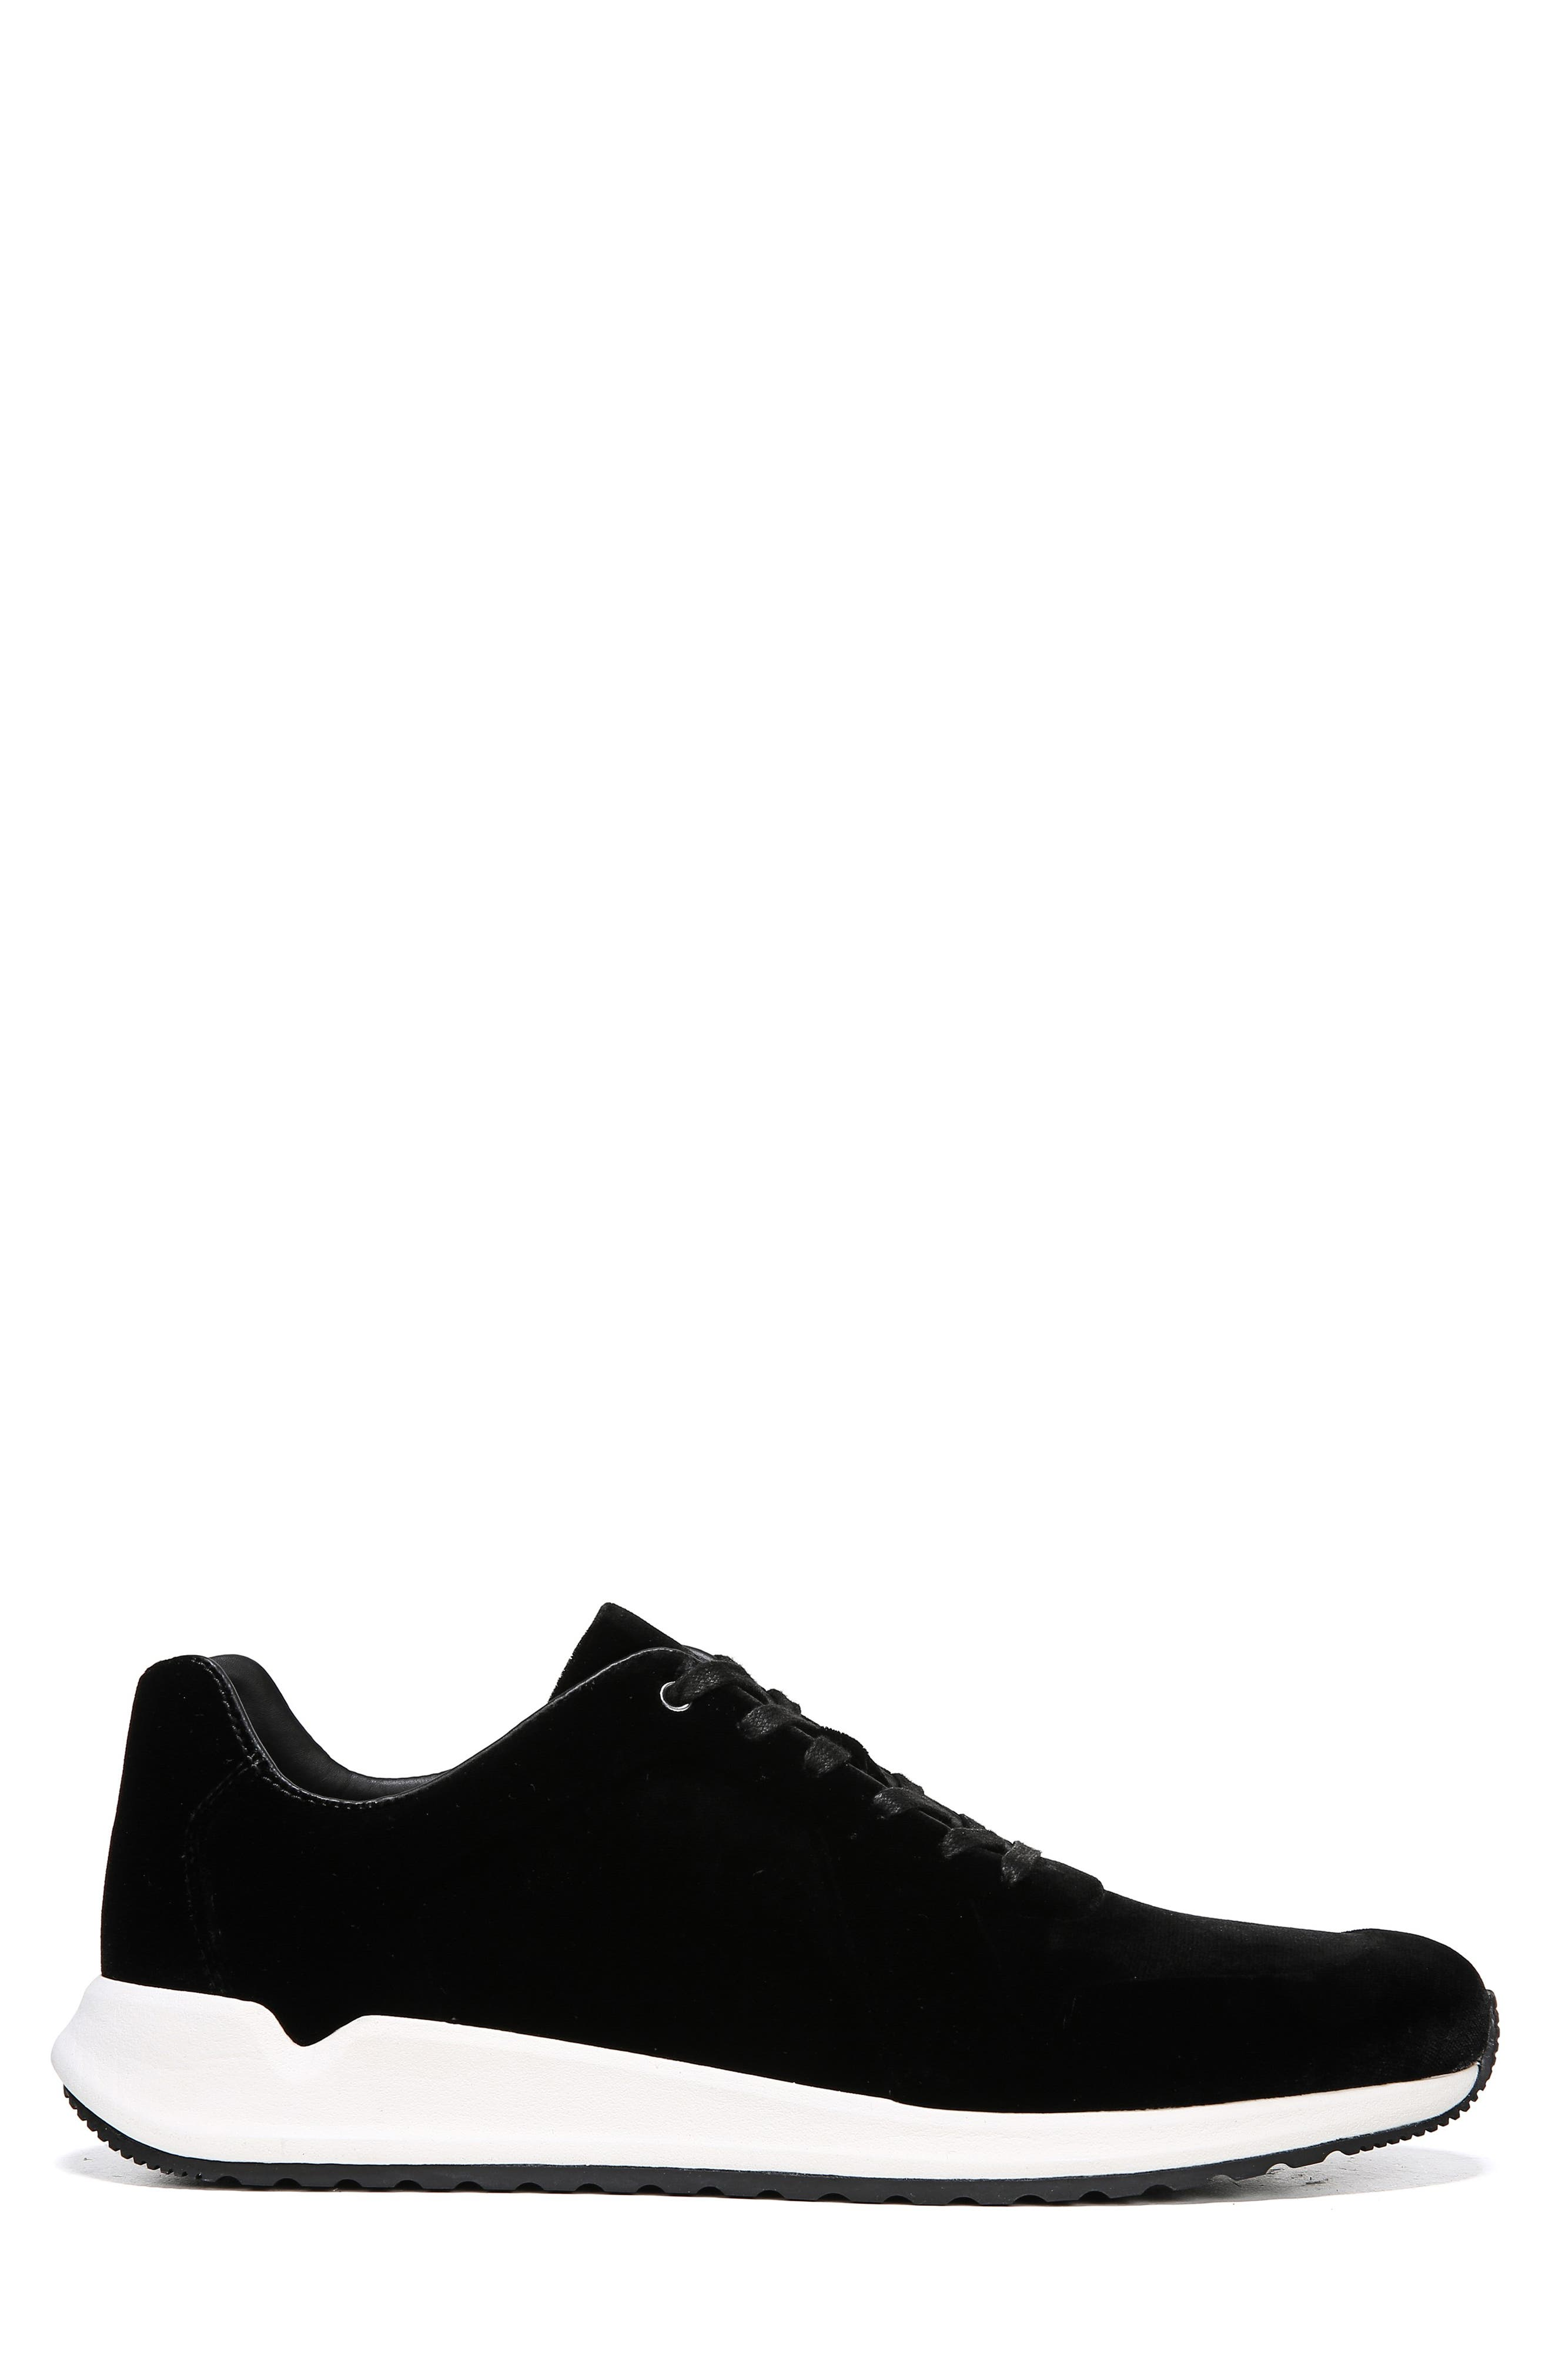 Garret Sneaker,                             Alternate thumbnail 3, color,                             BLACK